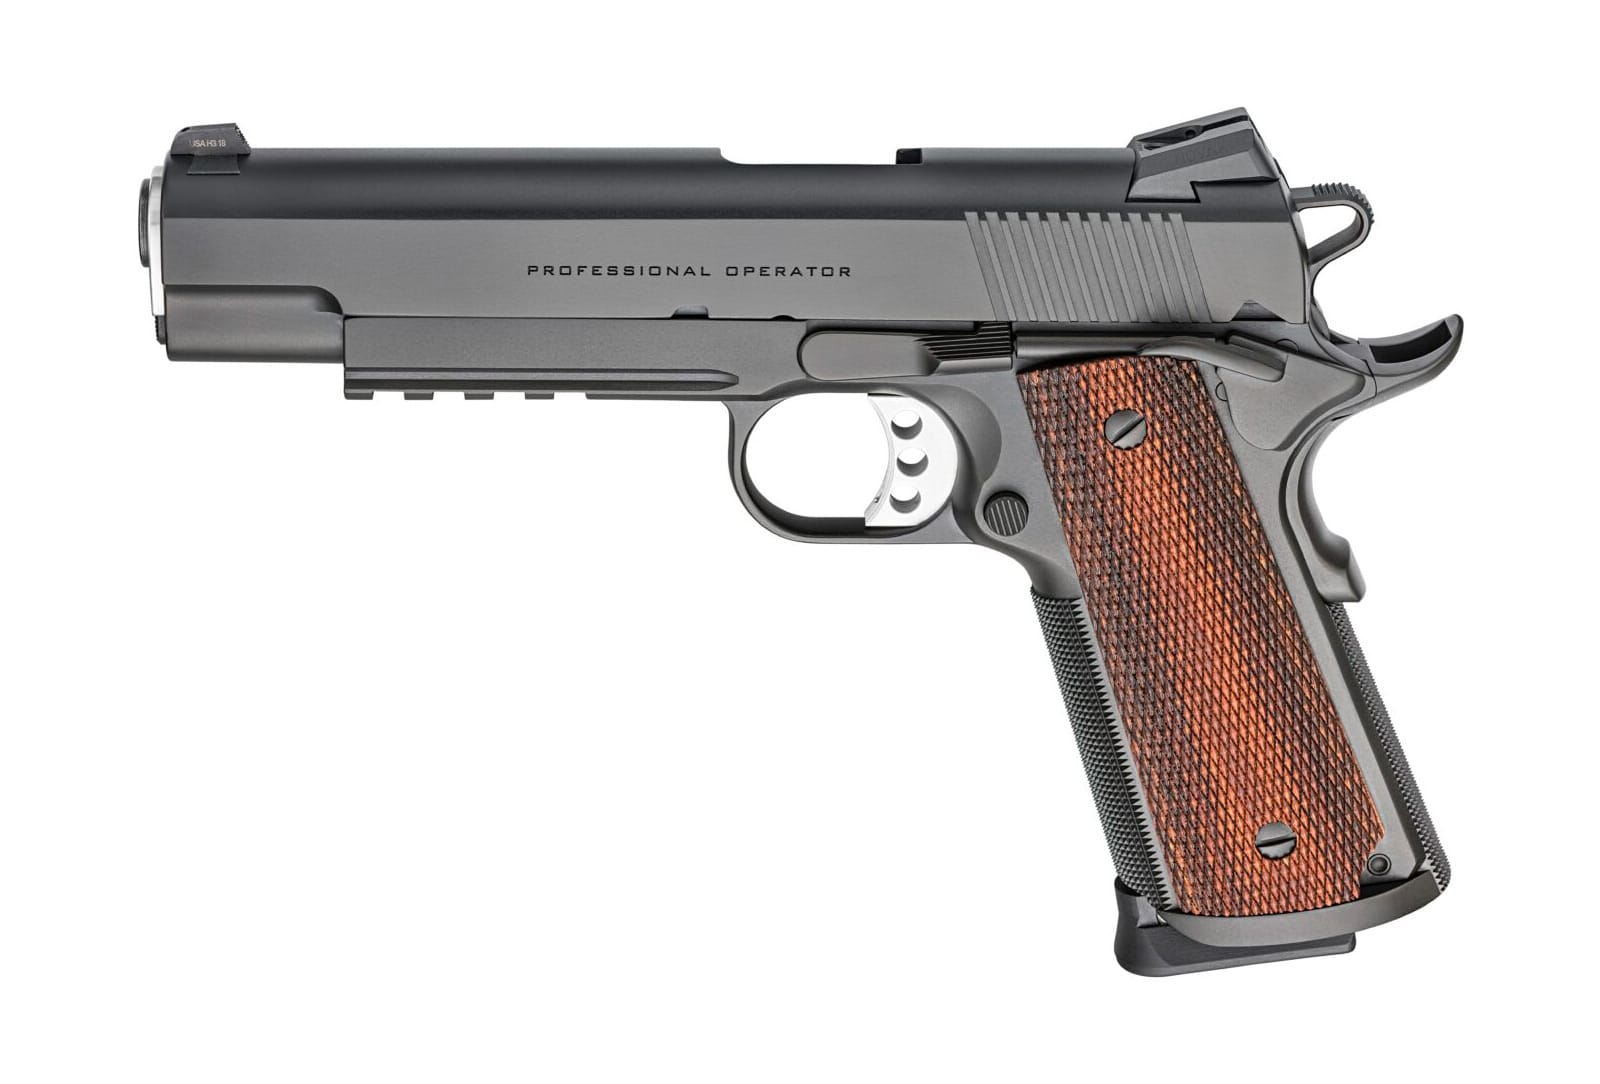 Springfield Armory 1911 9mm Custom Professional with a light rail